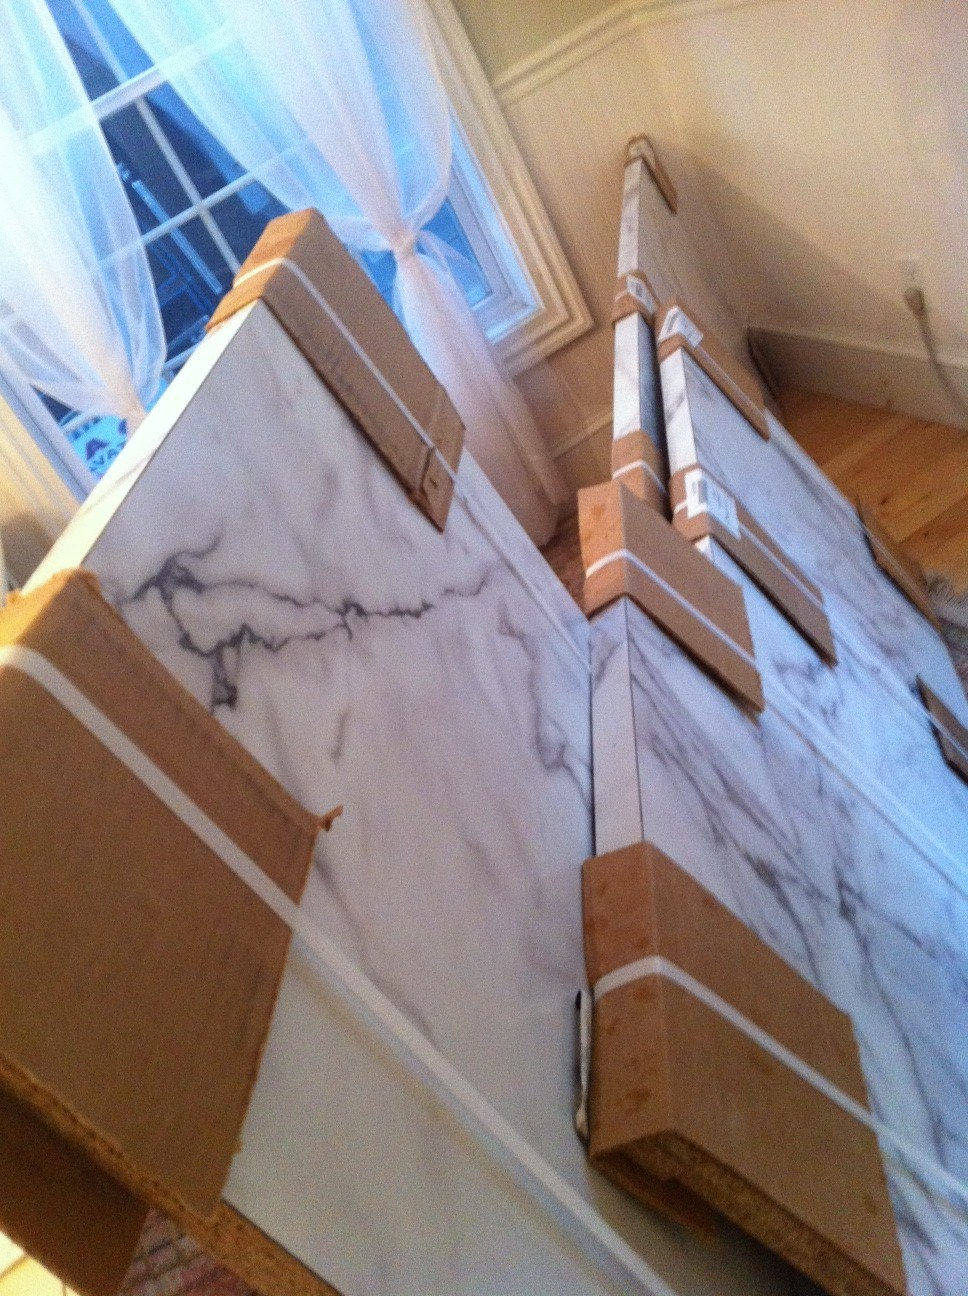 Maison decor kitchen counters arrived for Maison decour